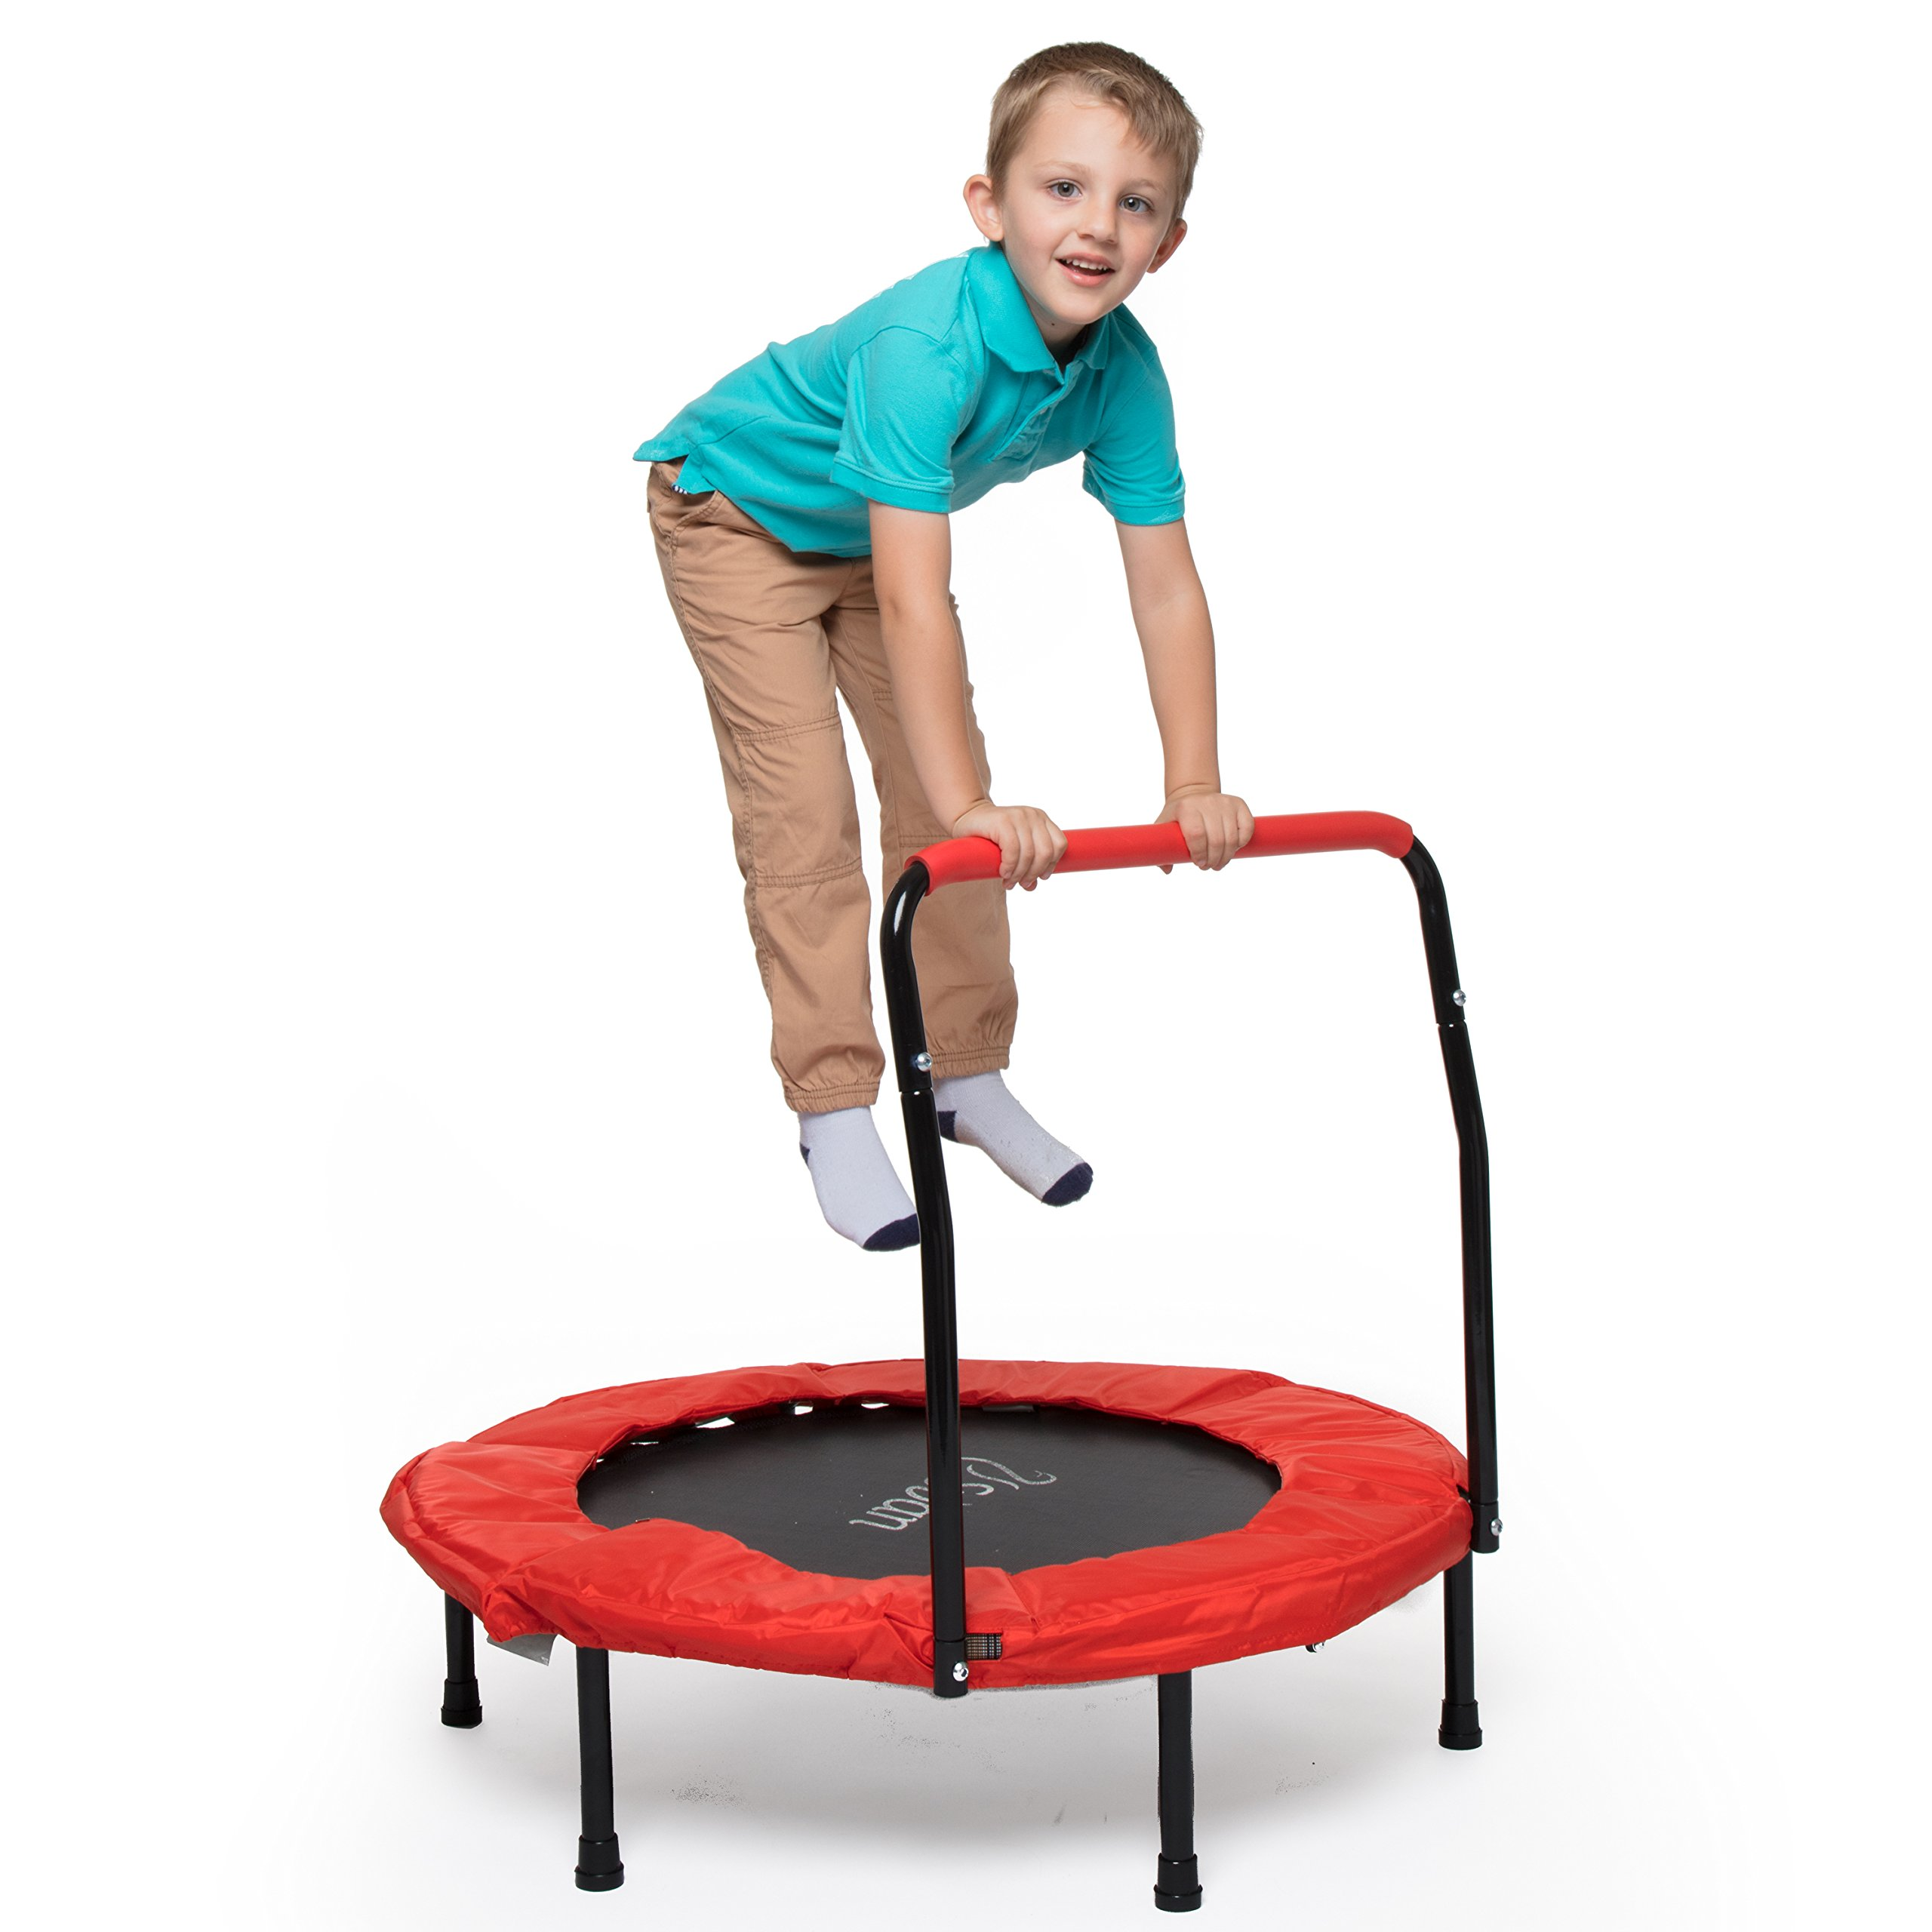 Svan 36 Inches Kid Trampoline w Handle for Stability - Foldable Handrail and Portable